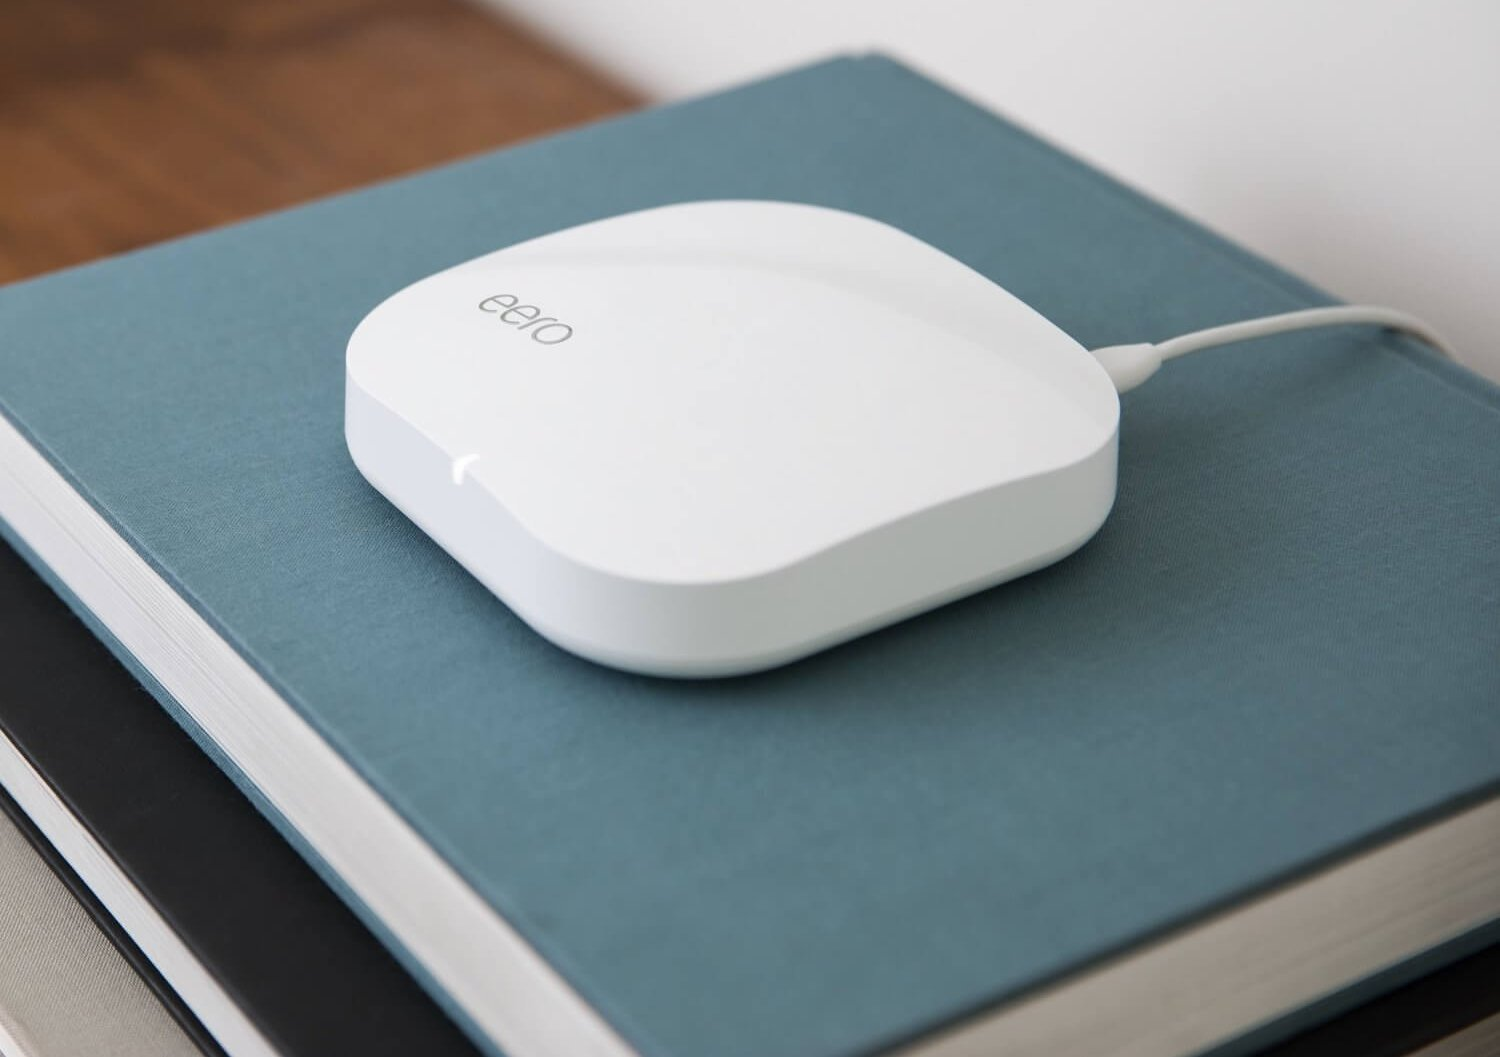 Mesh WiFi for Apple Ecosystem